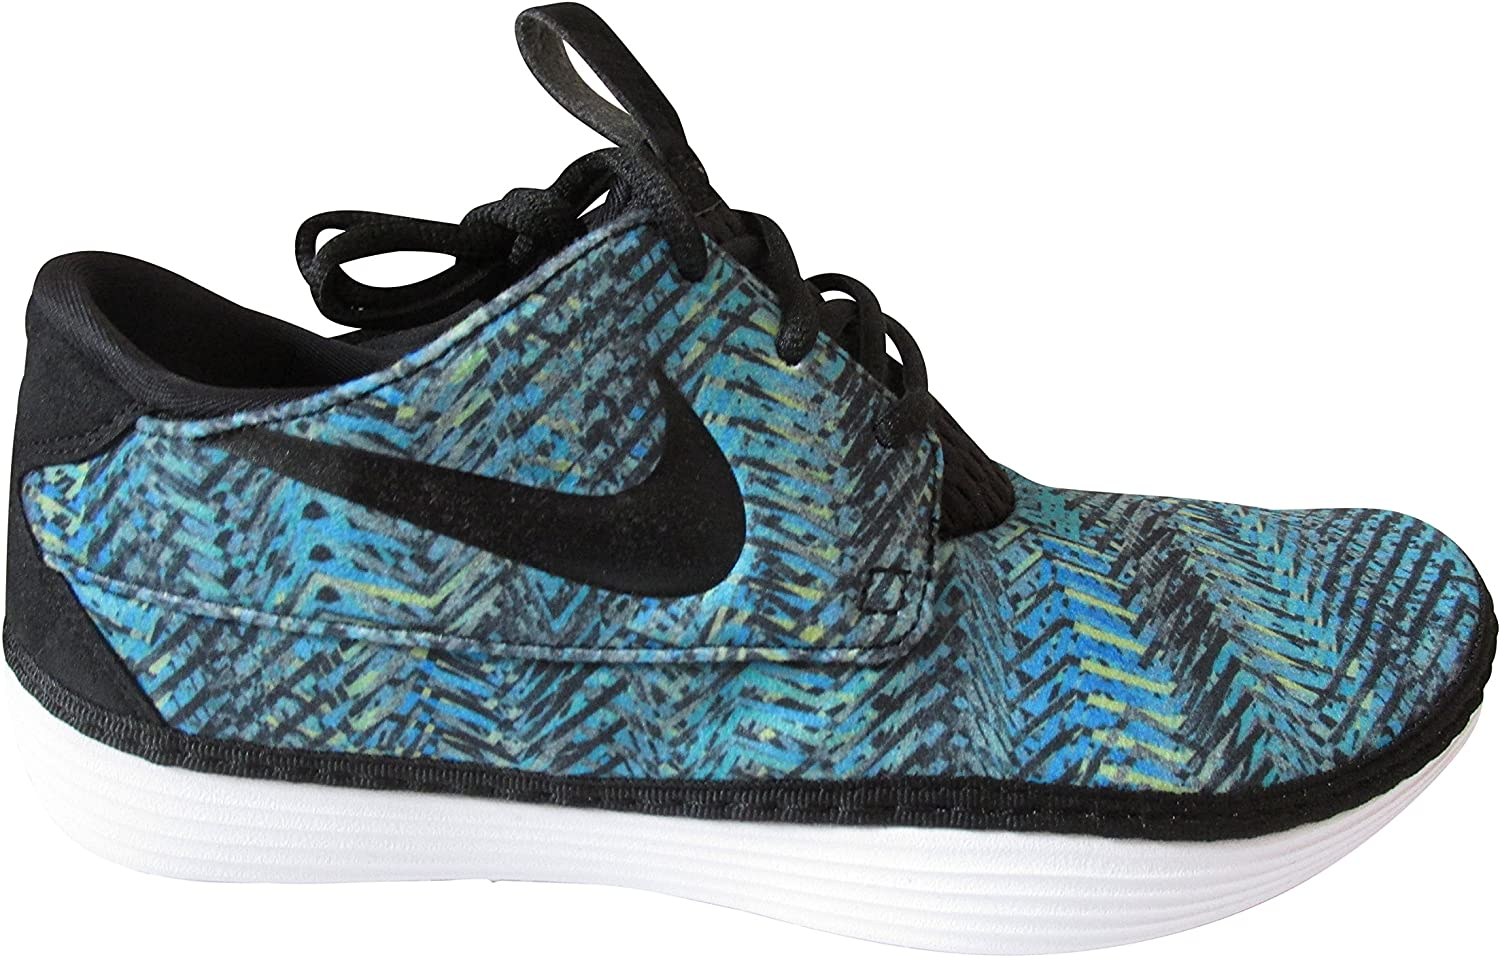 Nike Solarsoft Moccasin QS Mens Trainers 704356 Sneakers shoes